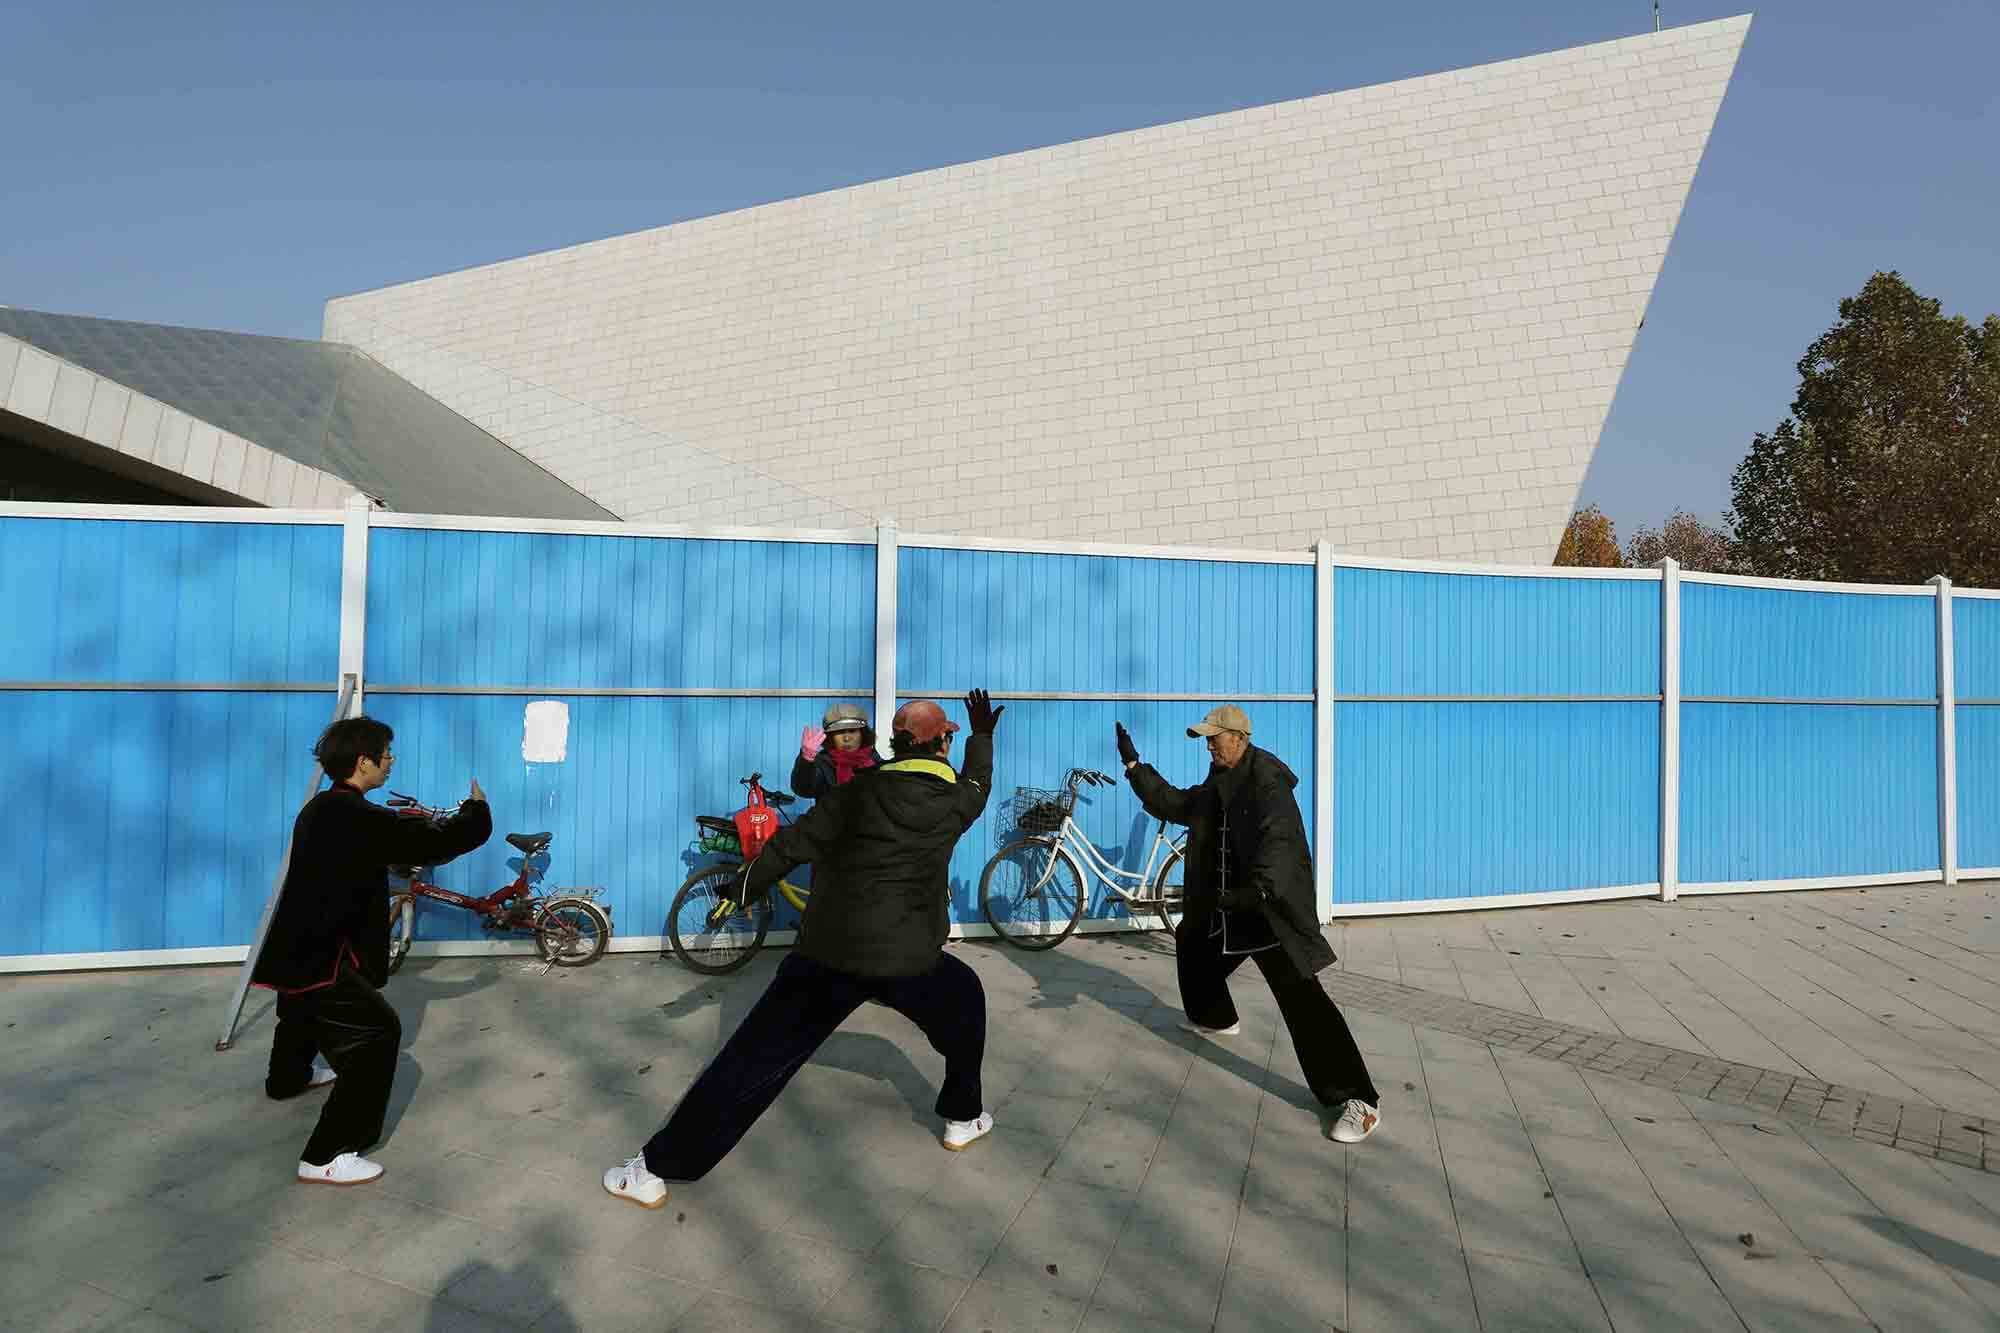 four people practise tai chi next to a fence, beyond which is an angular new building